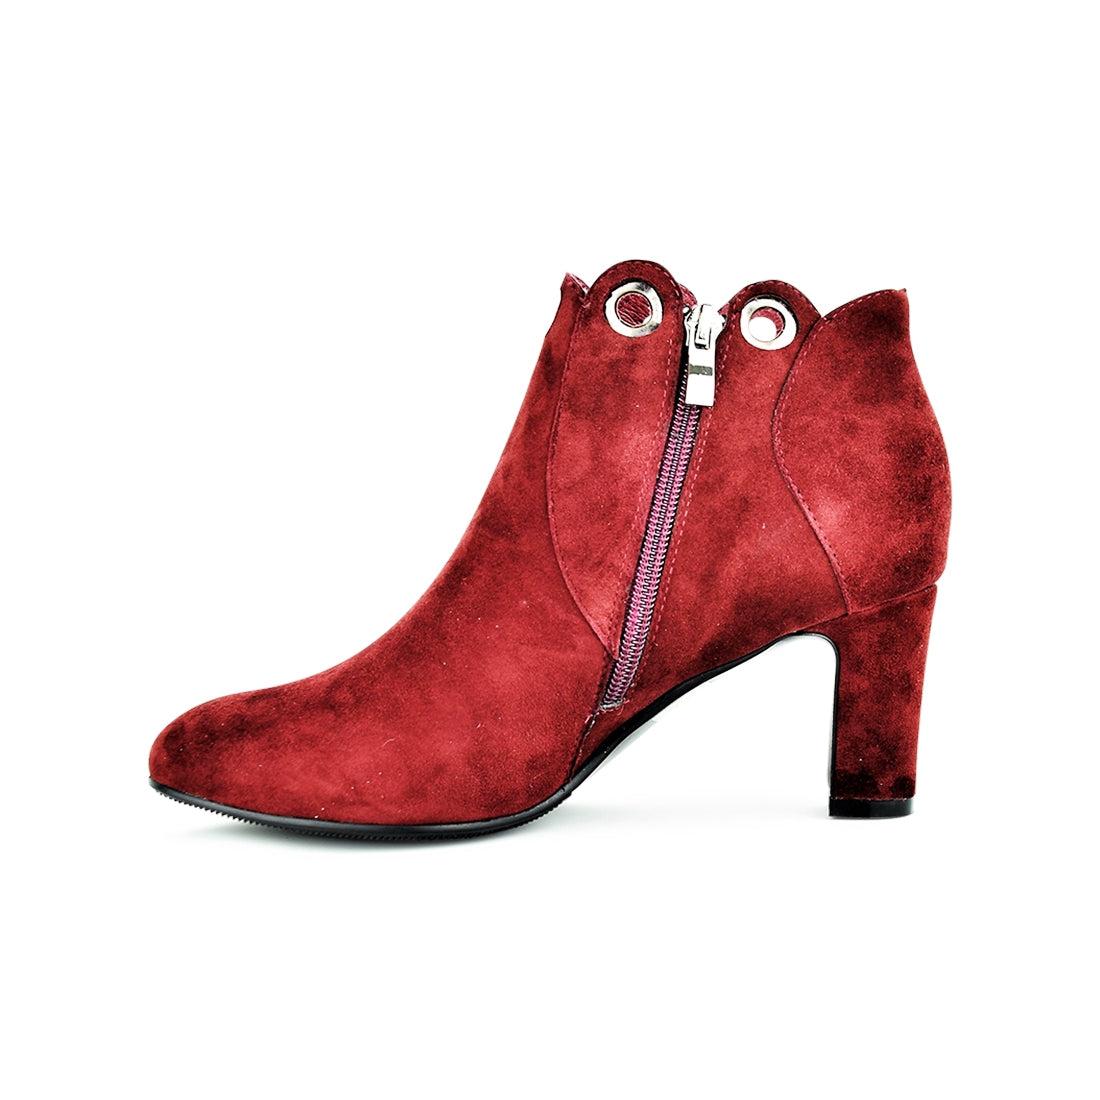 BLAIN - Warwick Dawson Ankle Boots Red Suede